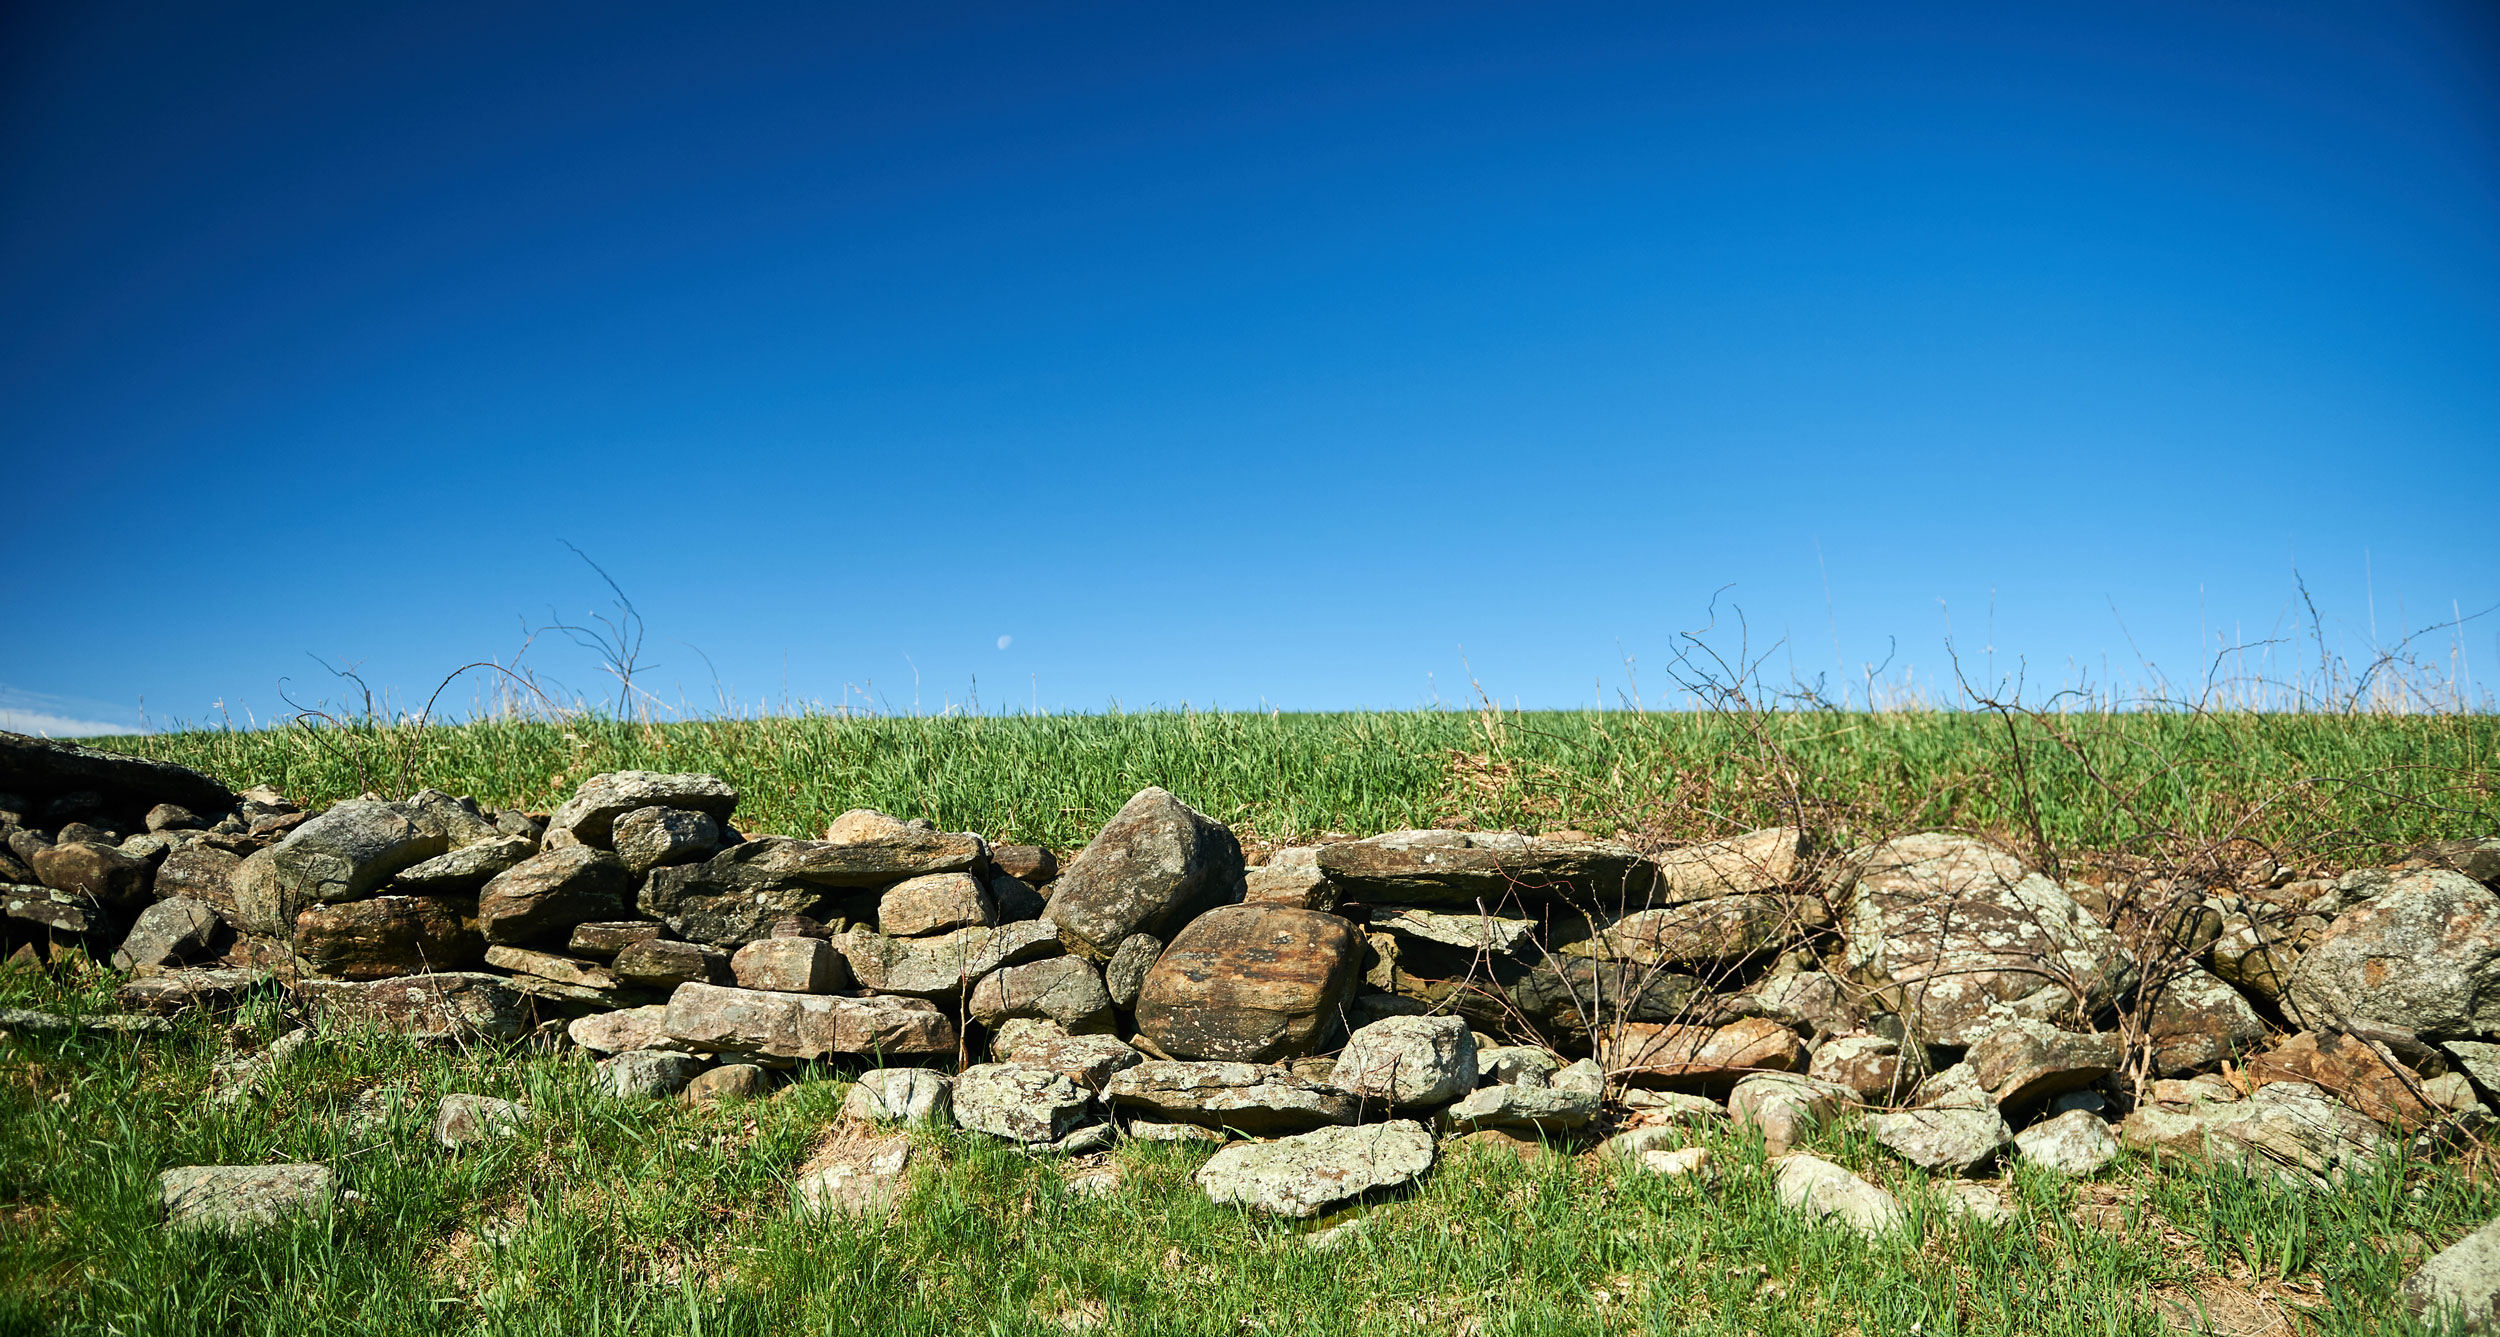 Rock wall in the foreground with bright blue skies